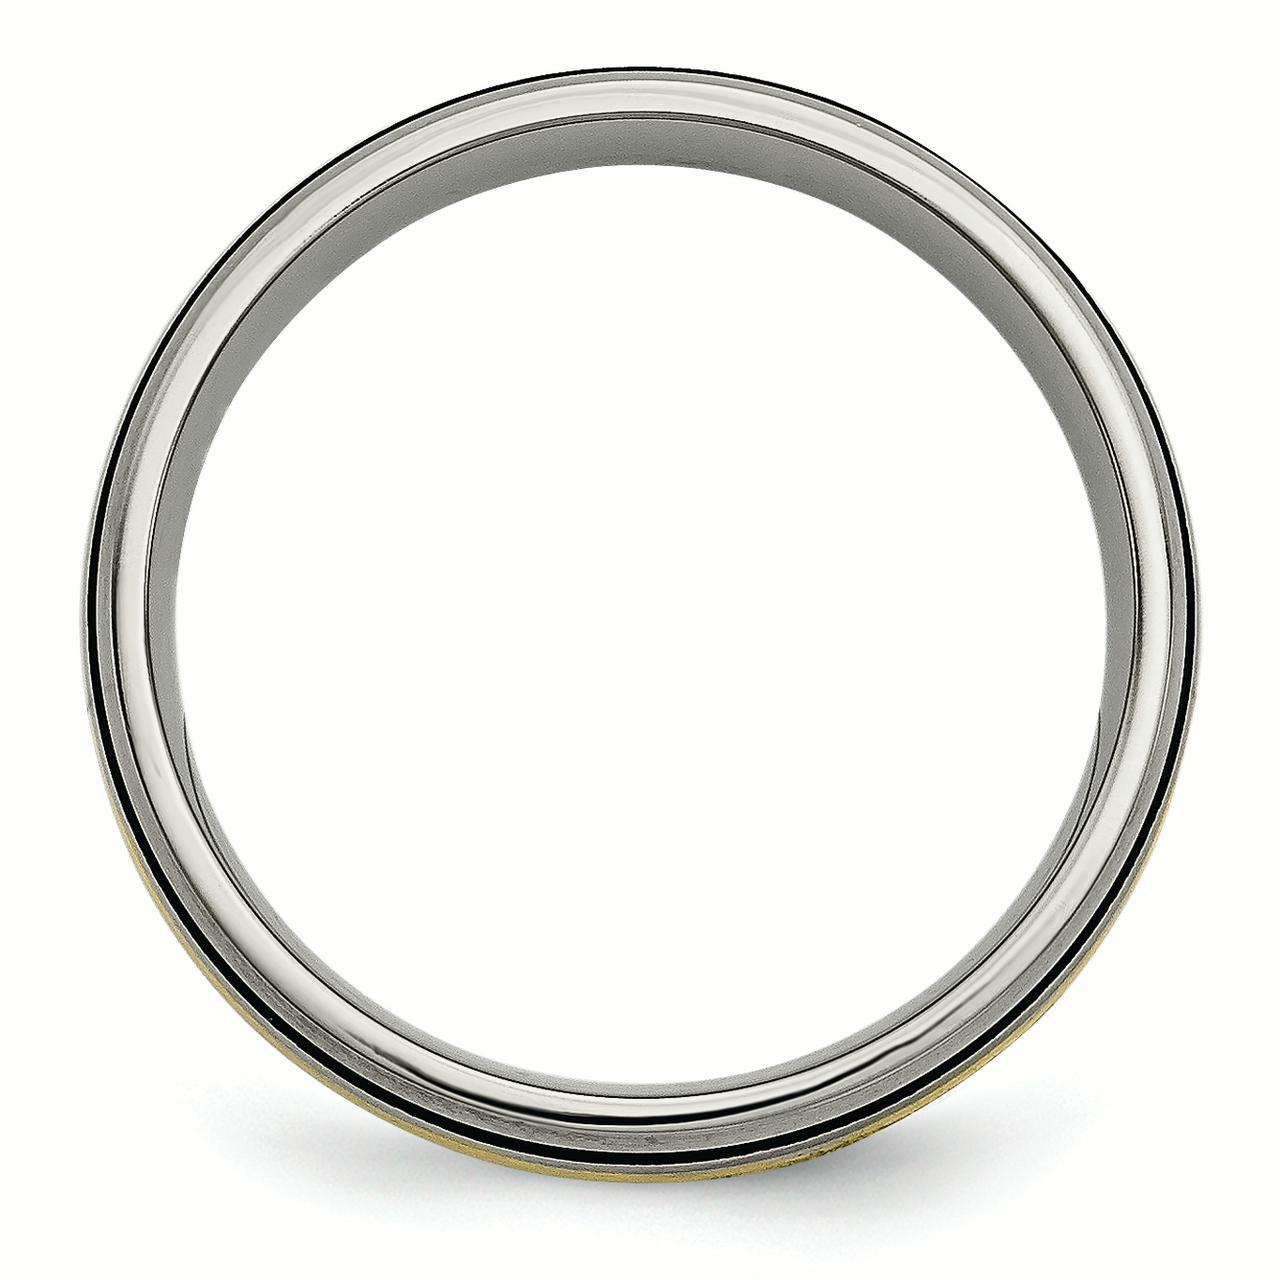 Titanium Grooved 14k Yellow Inlay 6mm Brushed Wedding Ring Band Size 11.50 Precious Metal Fine Jewelry Gifts For Women For Her - image 4 of 6